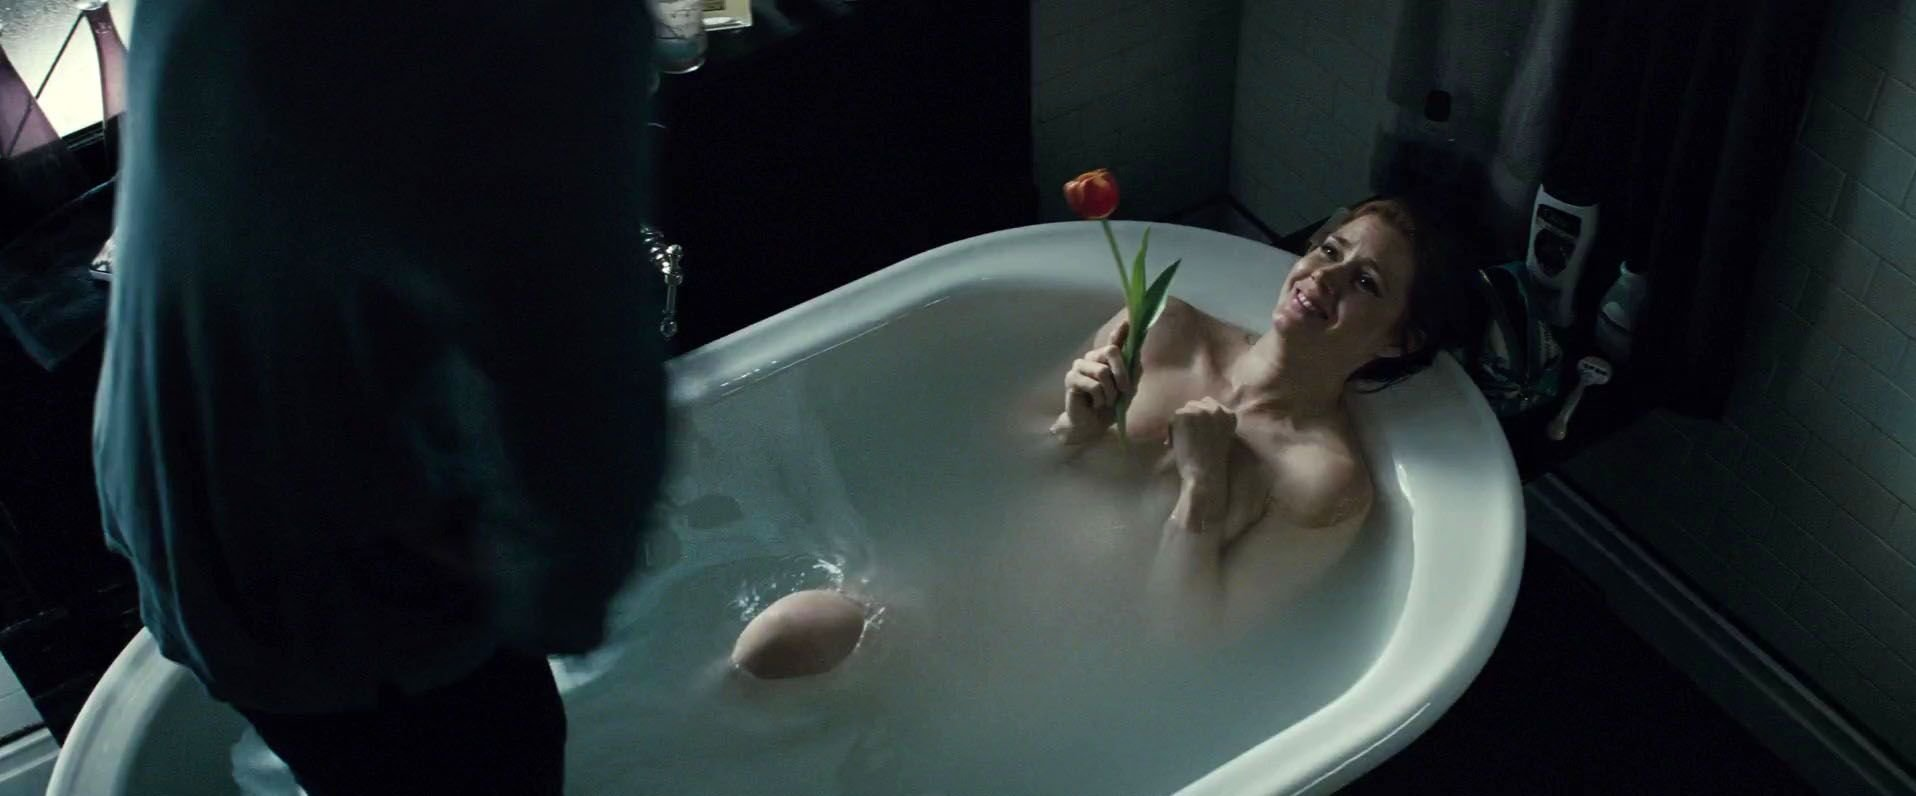 Amy Adams Nude Scene amy adams nude photos and videos | #thefappening